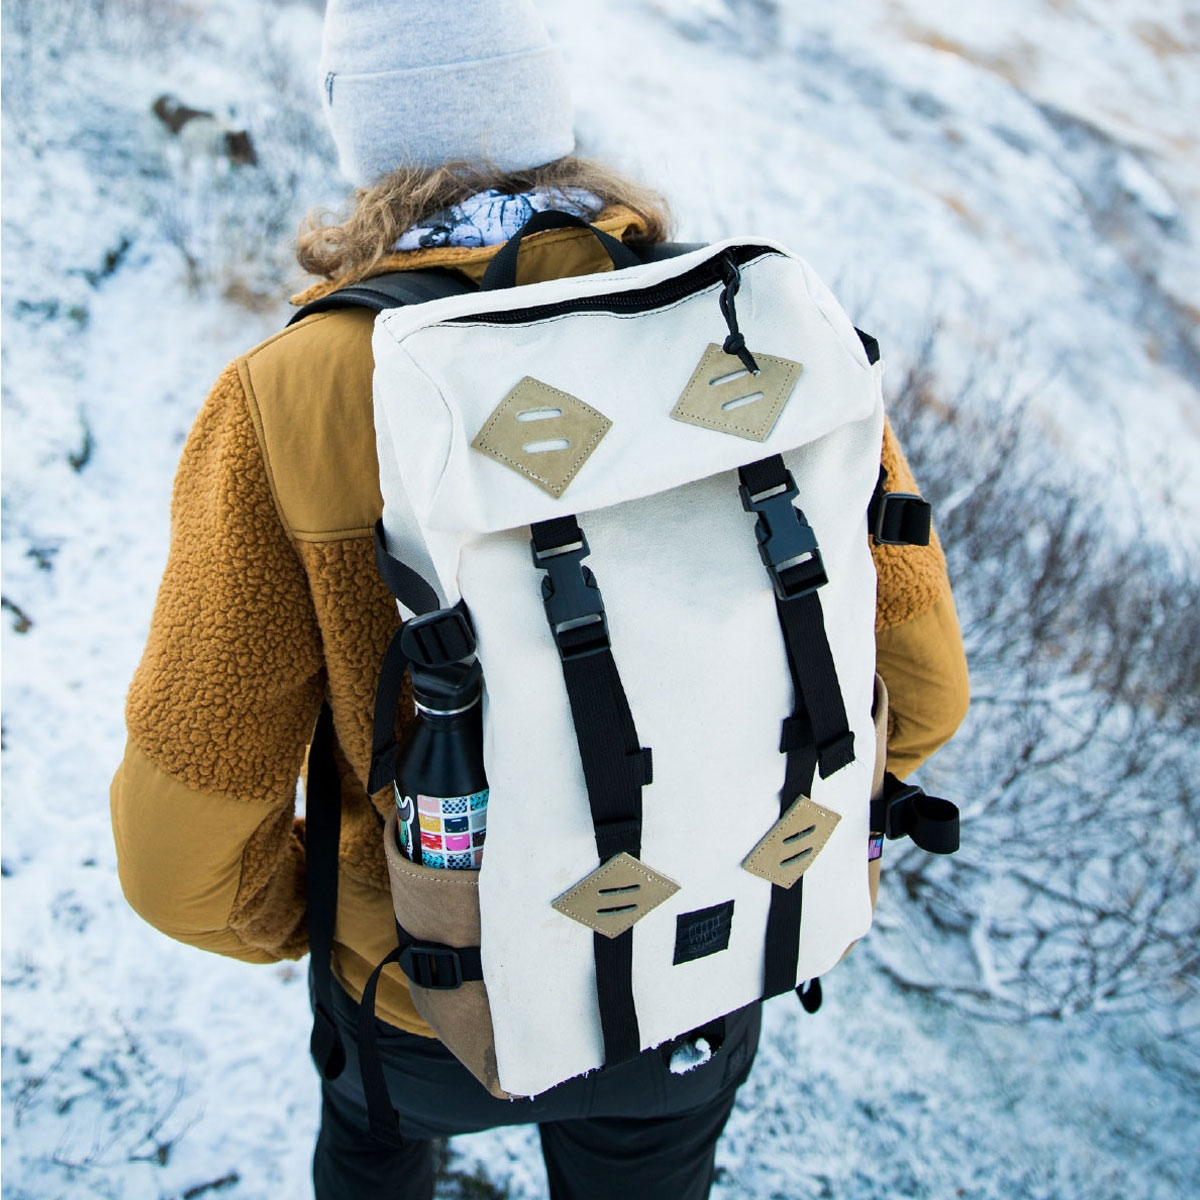 Topo Designs KlettersackNatural/Khaki Leather